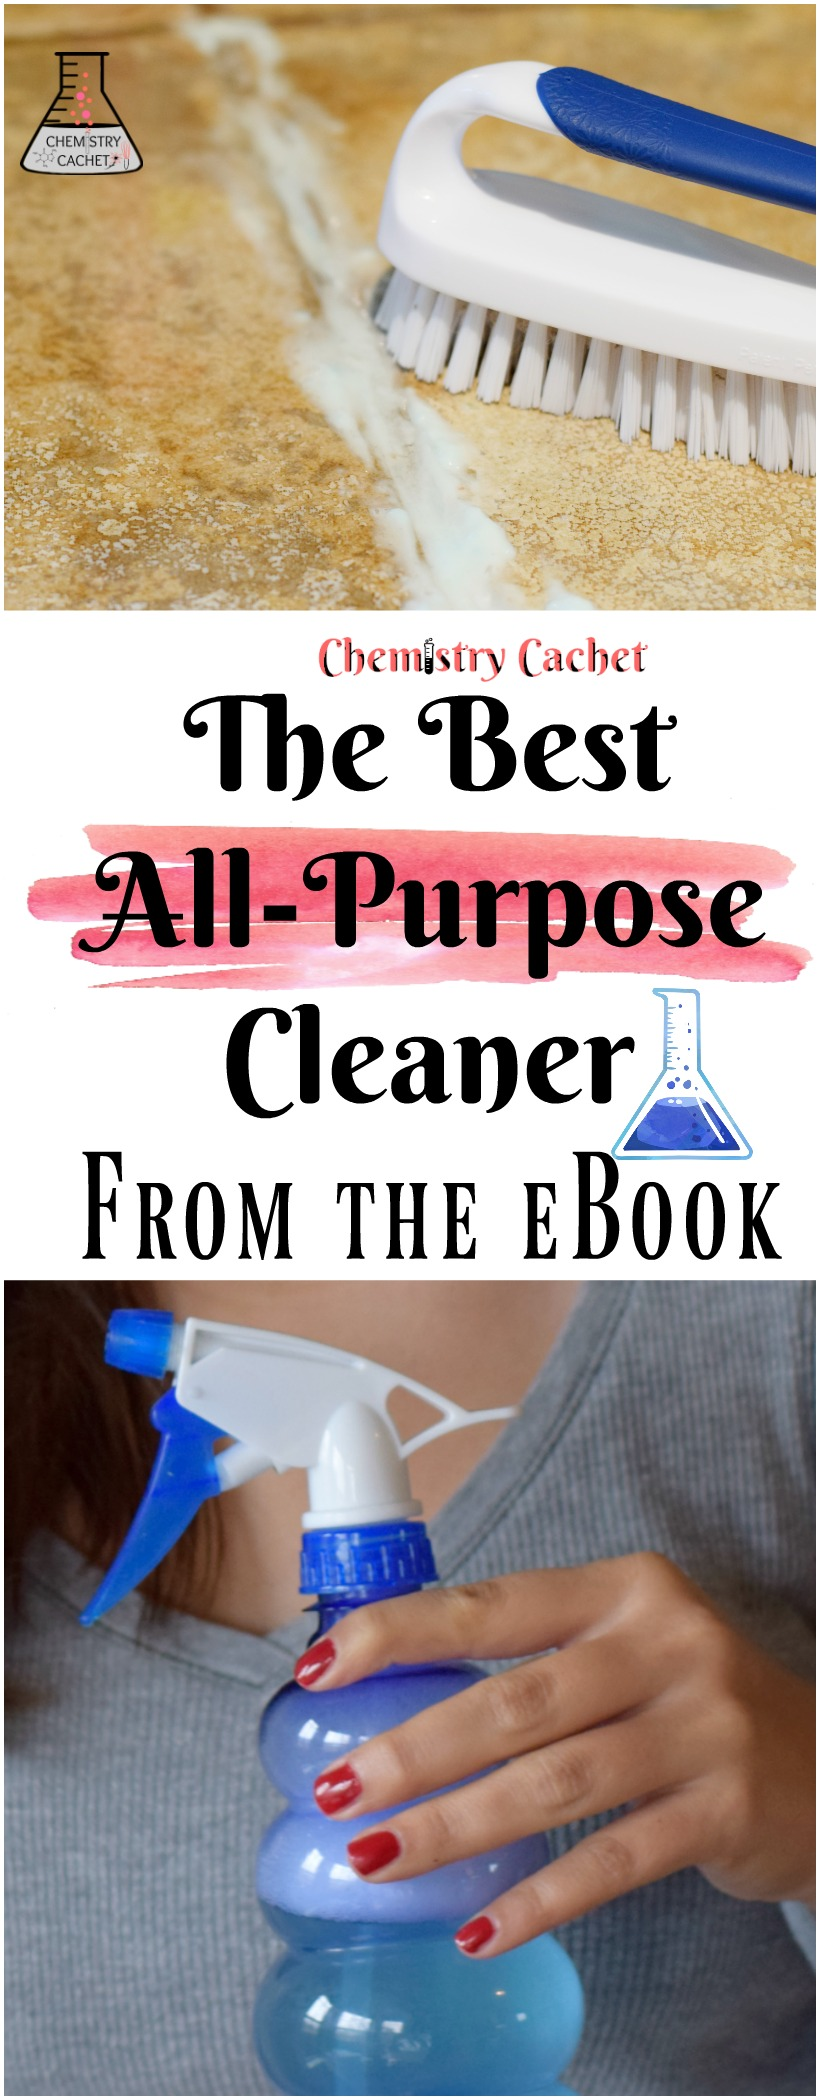 The BEST all-purpose DIY cleaner you can make! All from the eBook on chemistrycachet.com